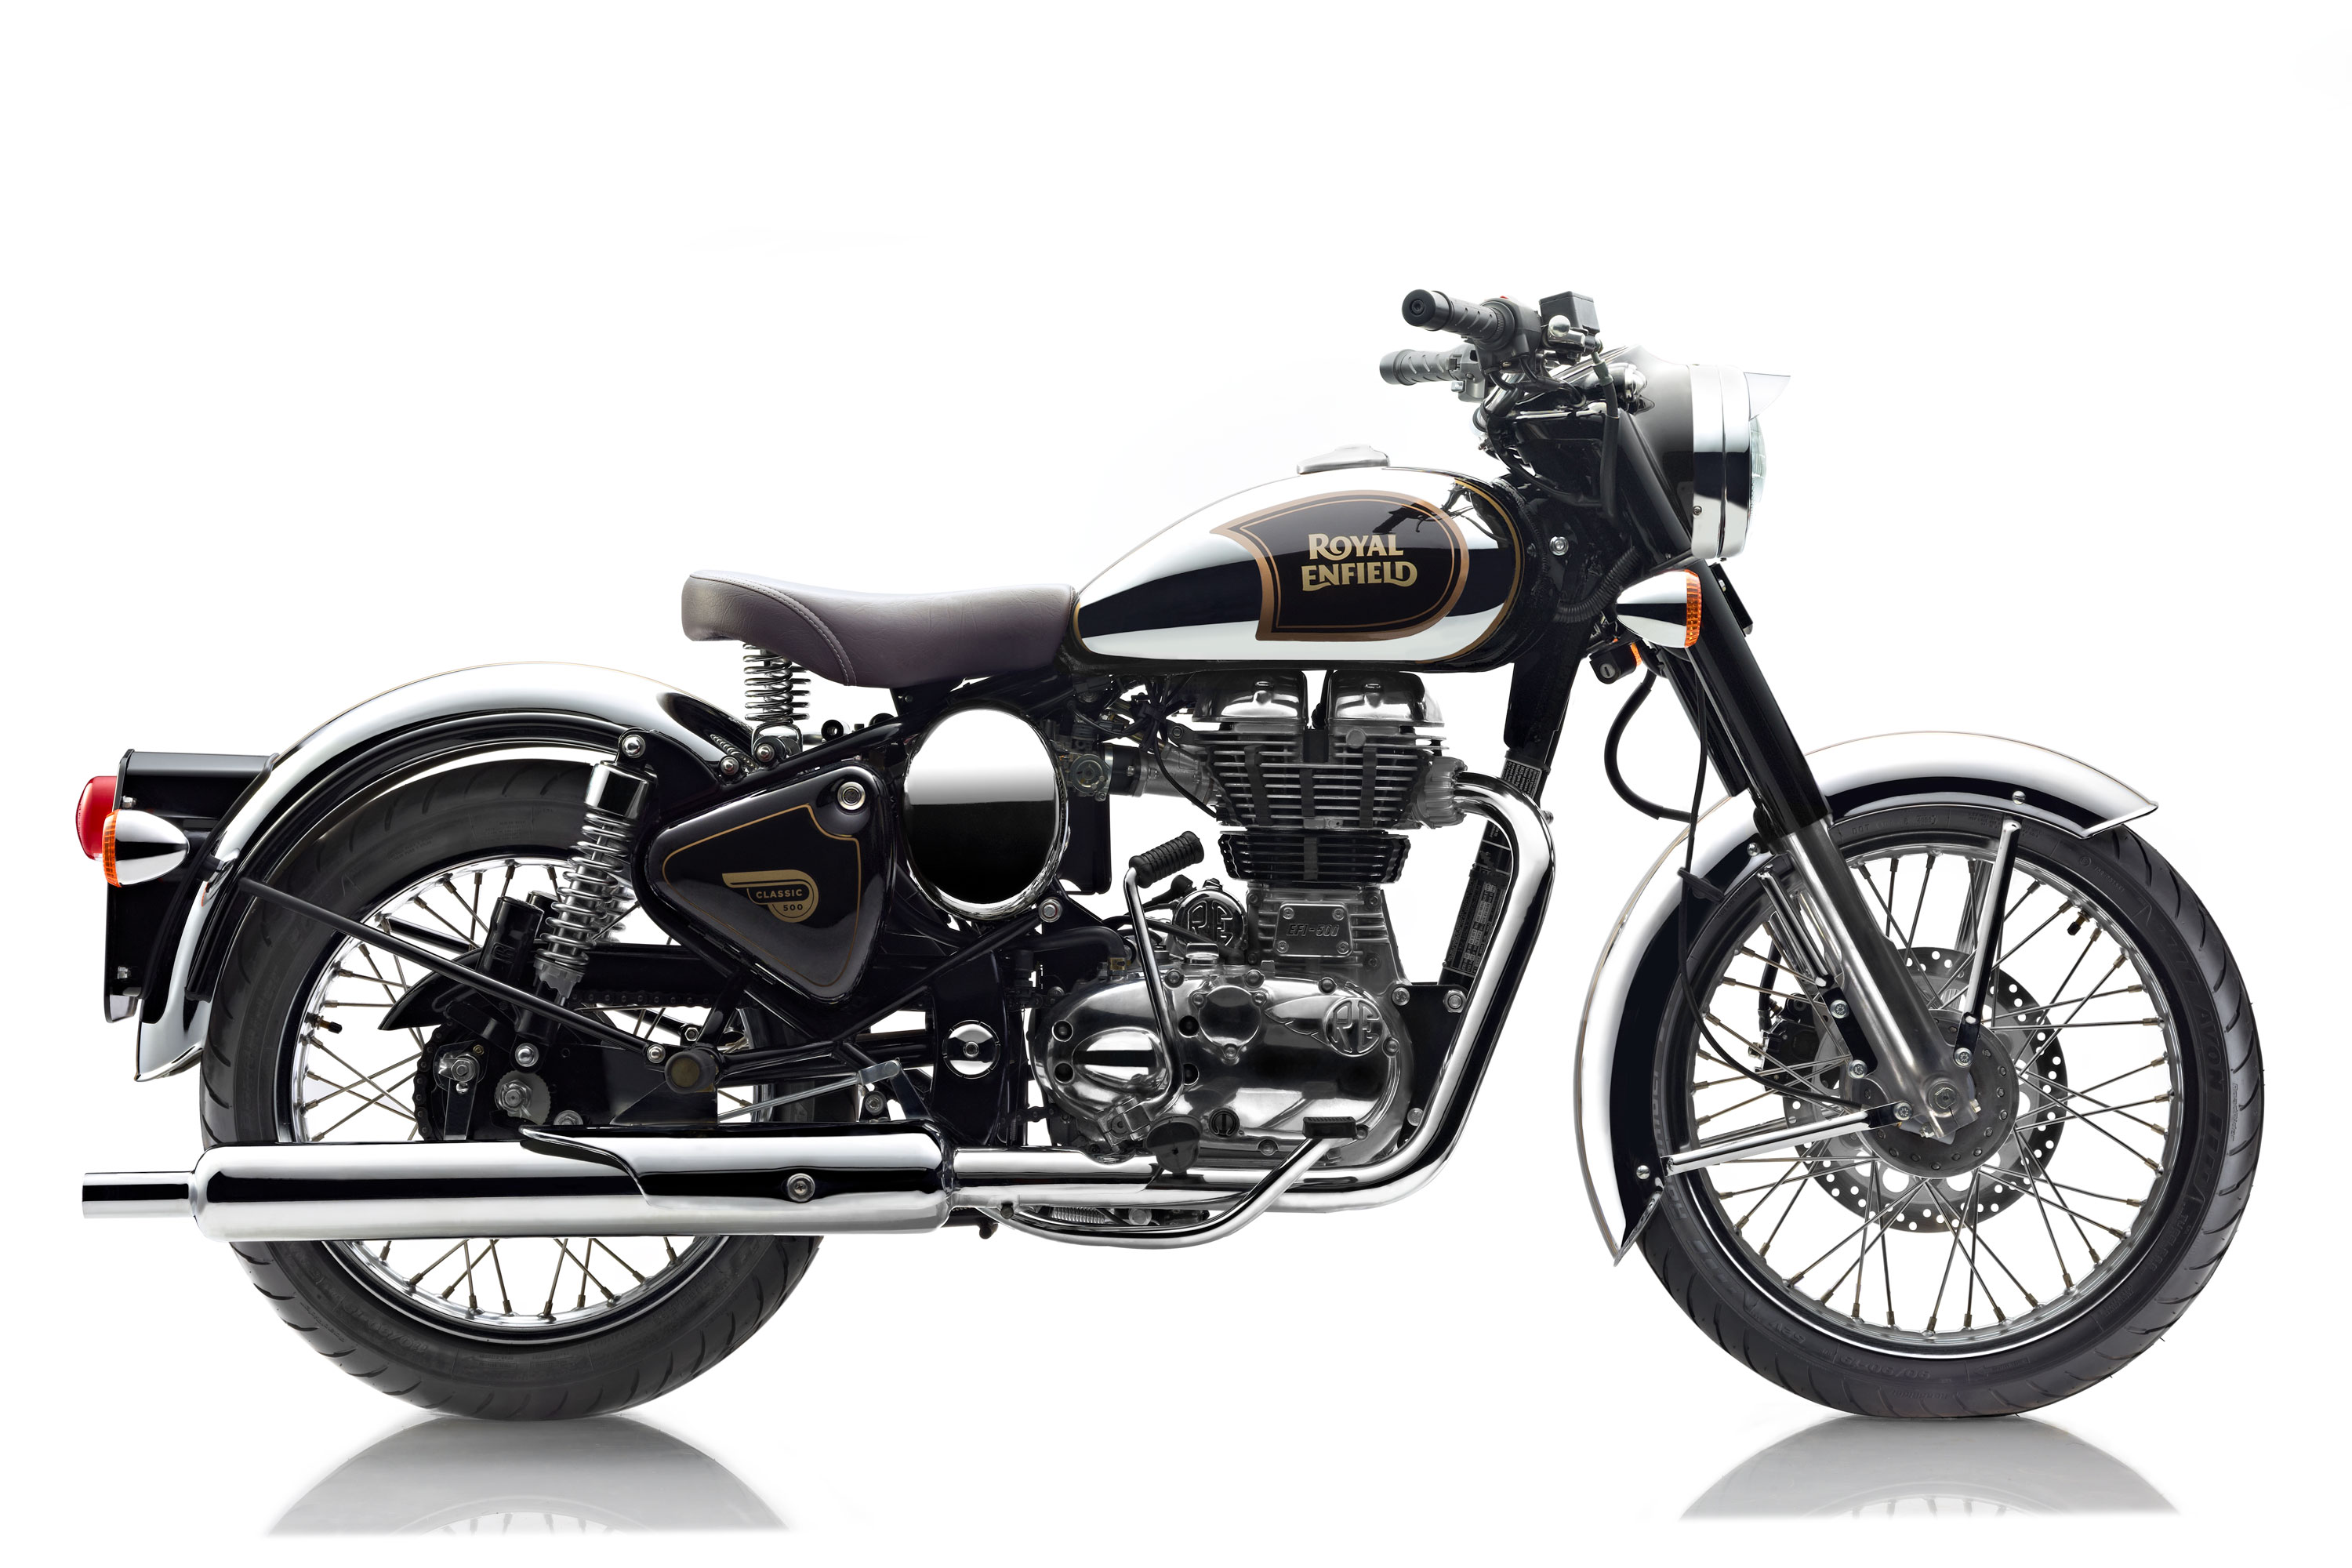 Royal Enfield World Motorrad Retro Classic 500 Chrome schwarz